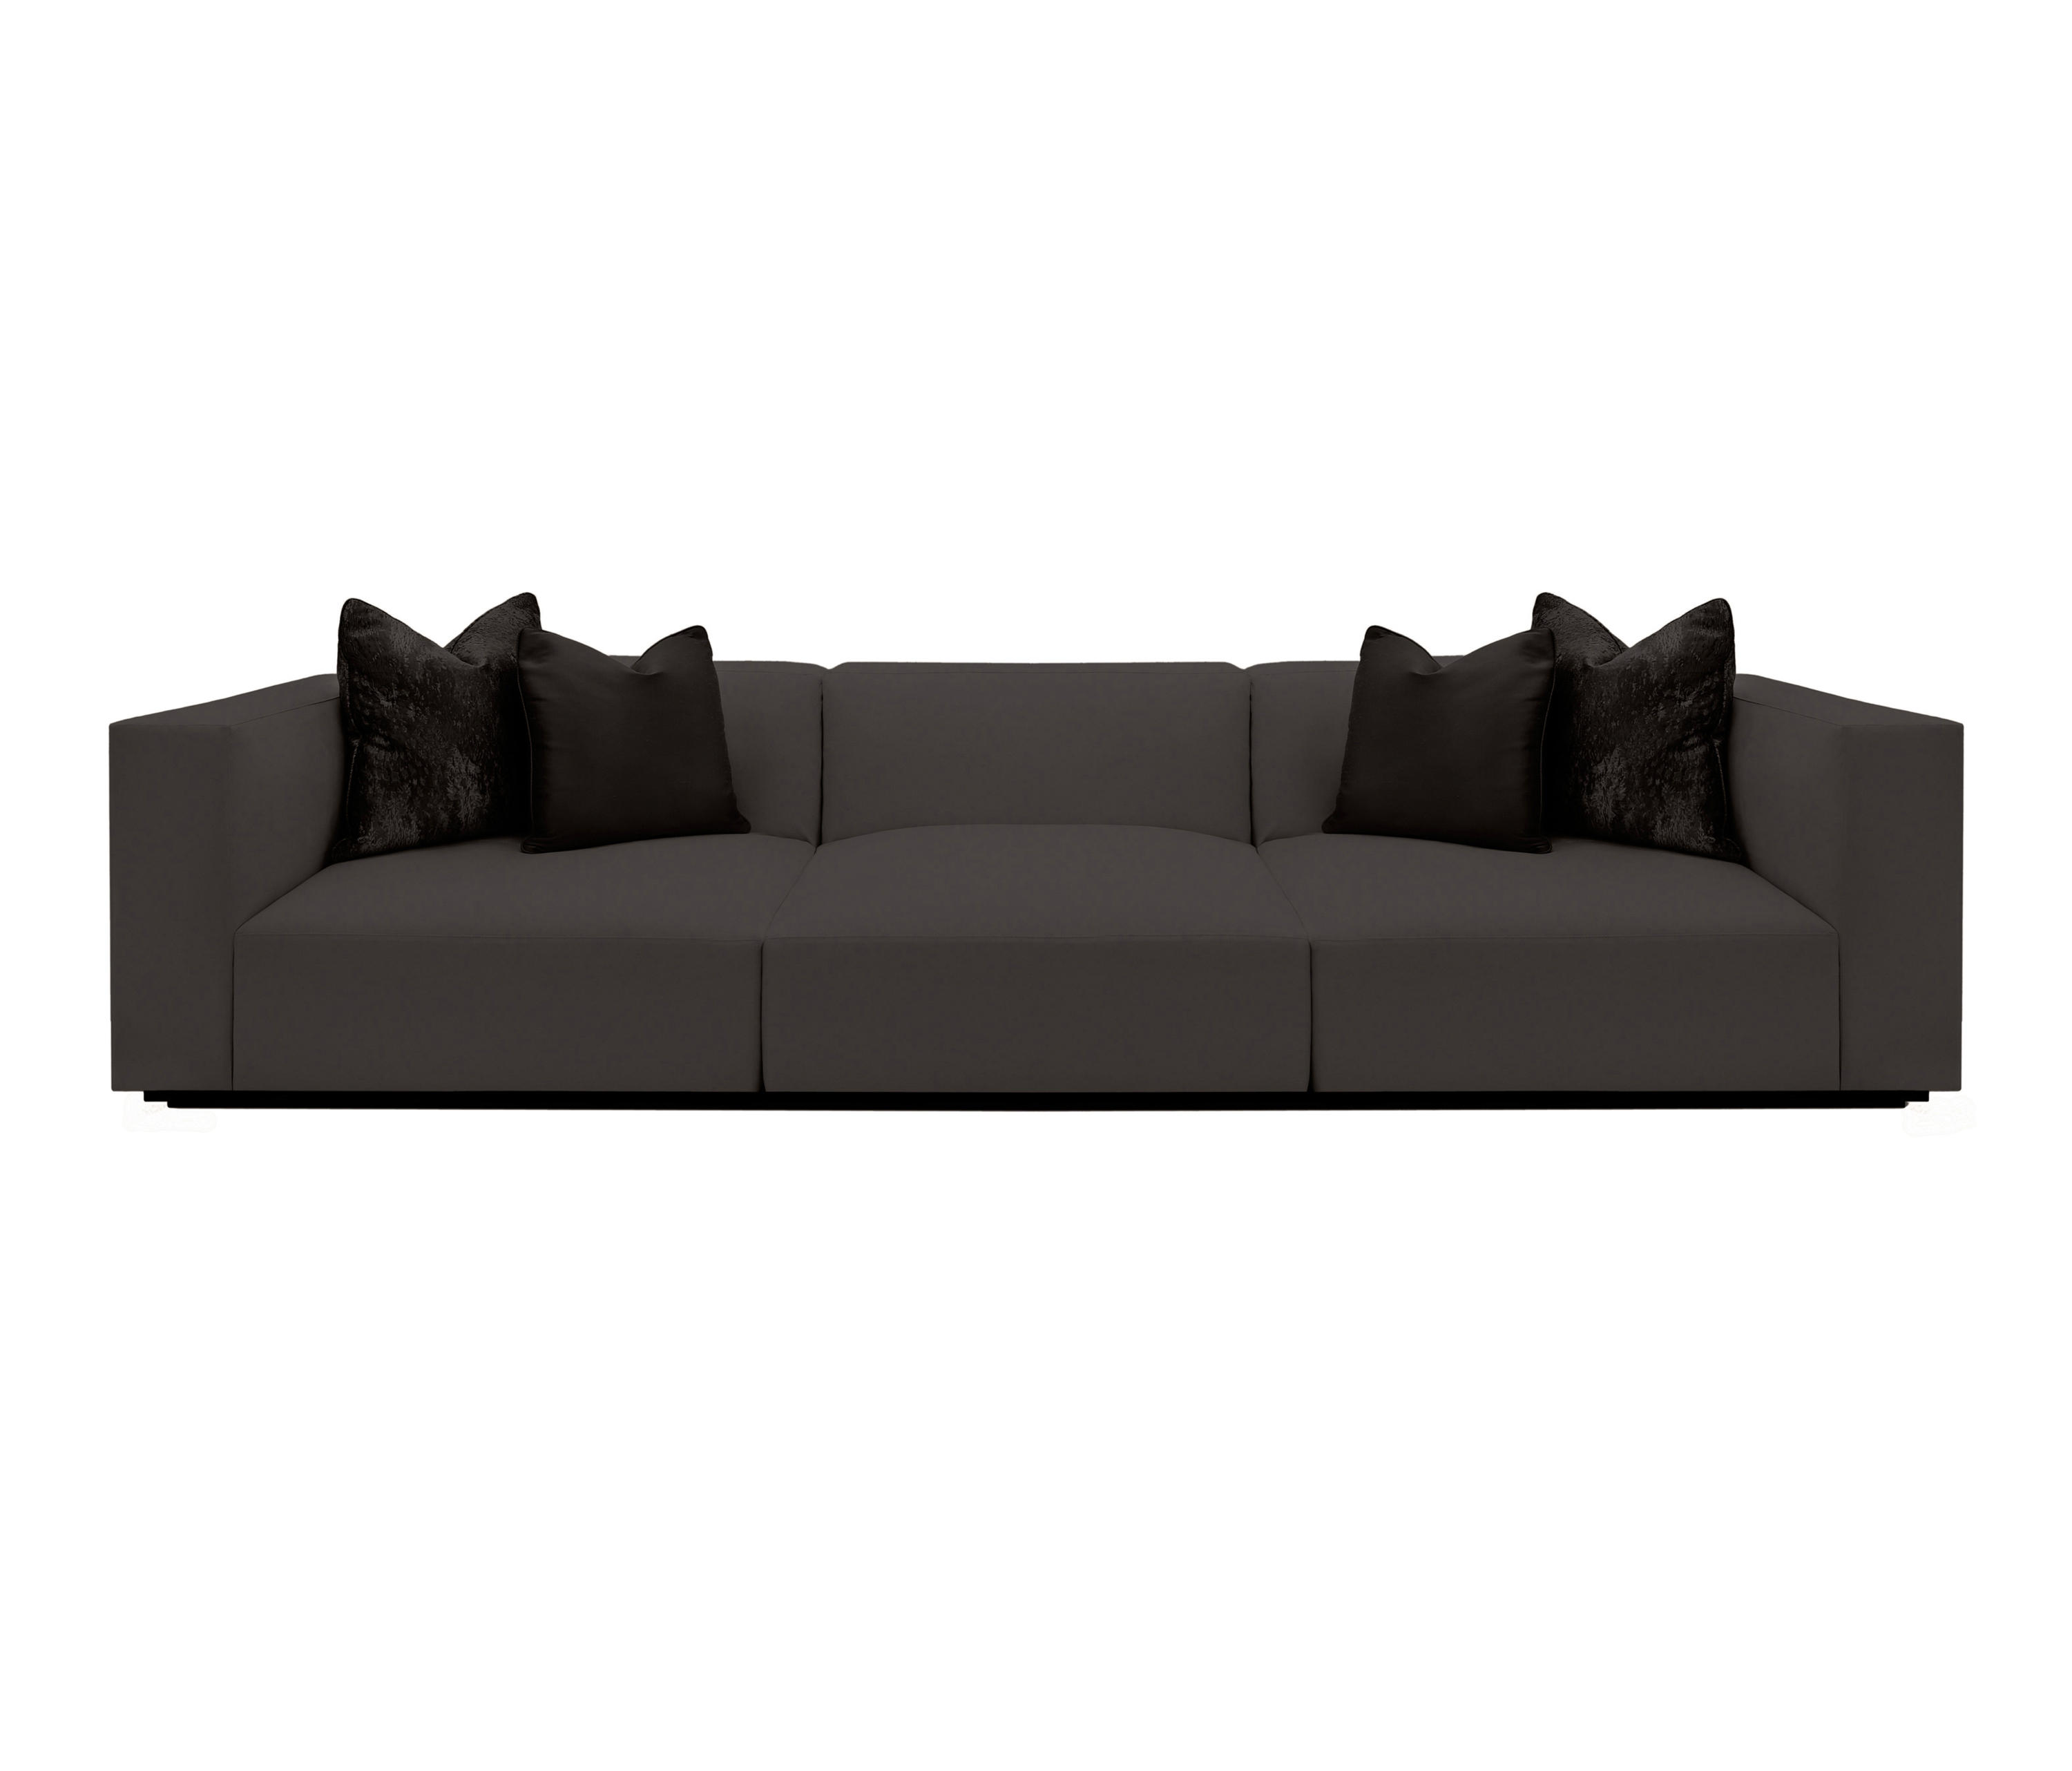 HAYWARD LARGE SOFA Lounge sofas from The Sofa & Chair pany